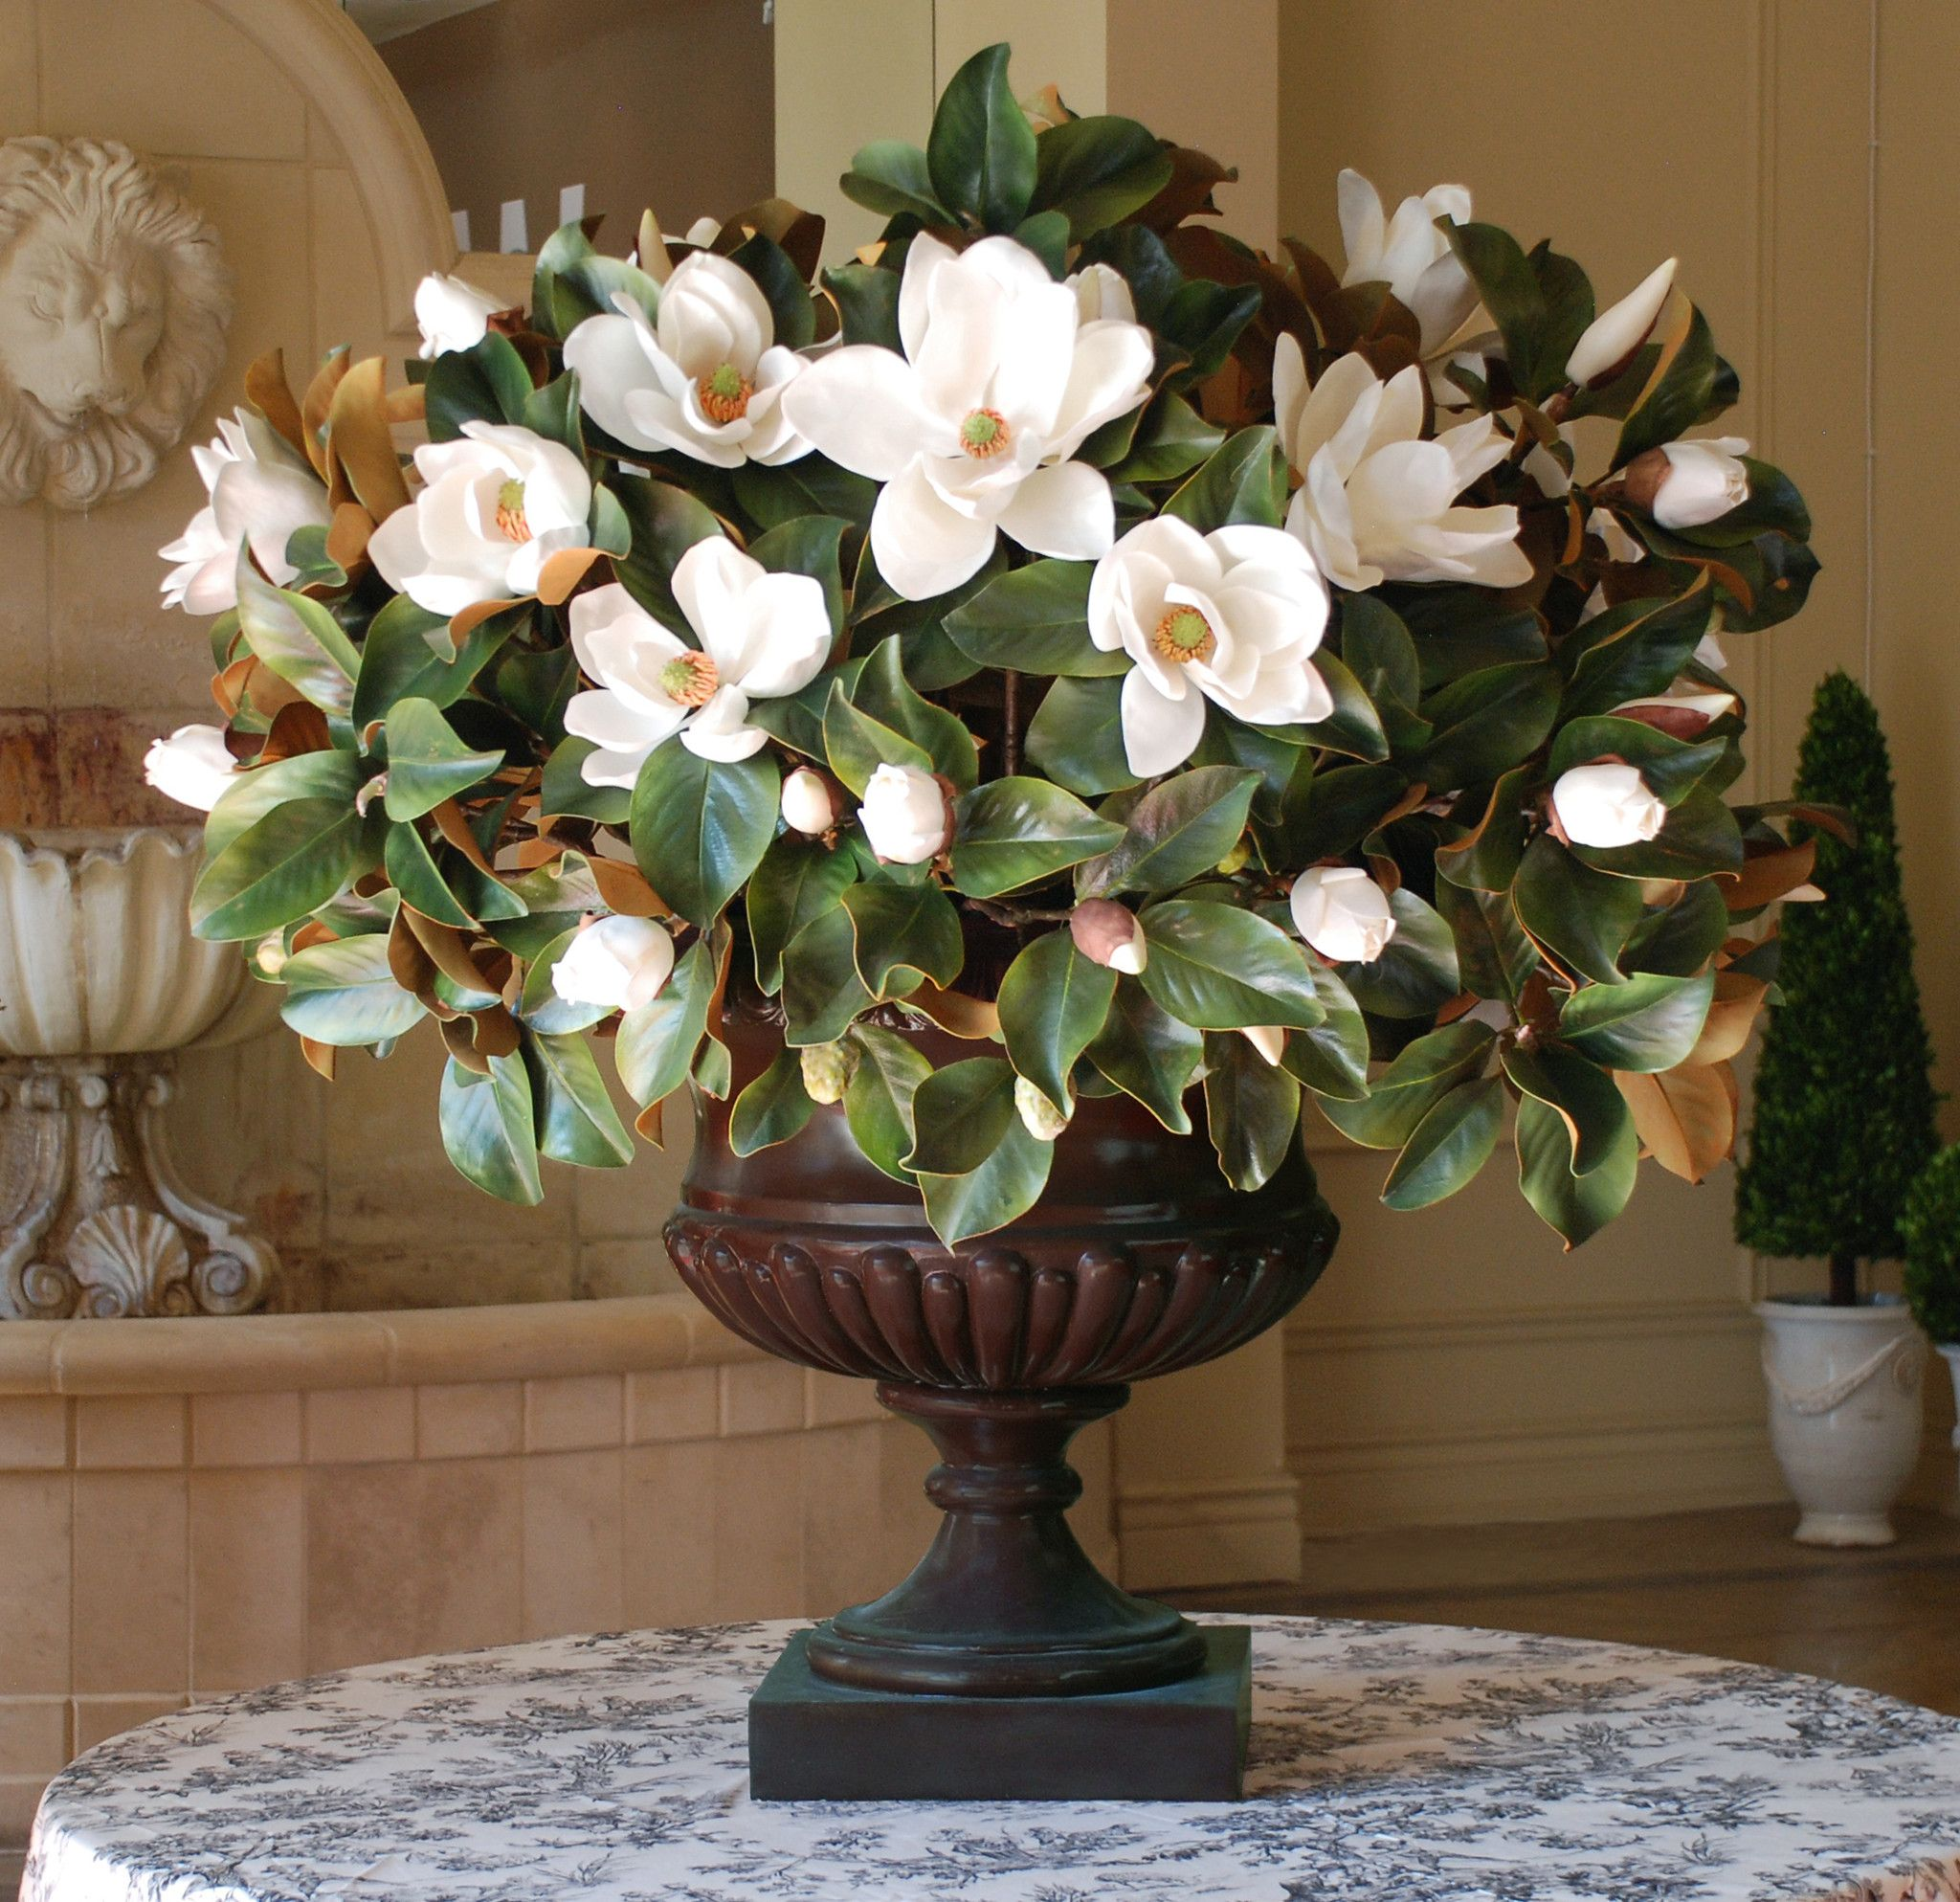 Magnolia in palladin urn whicon02 whgr urn magnolia and foyers for the entryway or foyer magnolia in palladin urn from winward home fine permanent botanicals mightylinksfo Choice Image